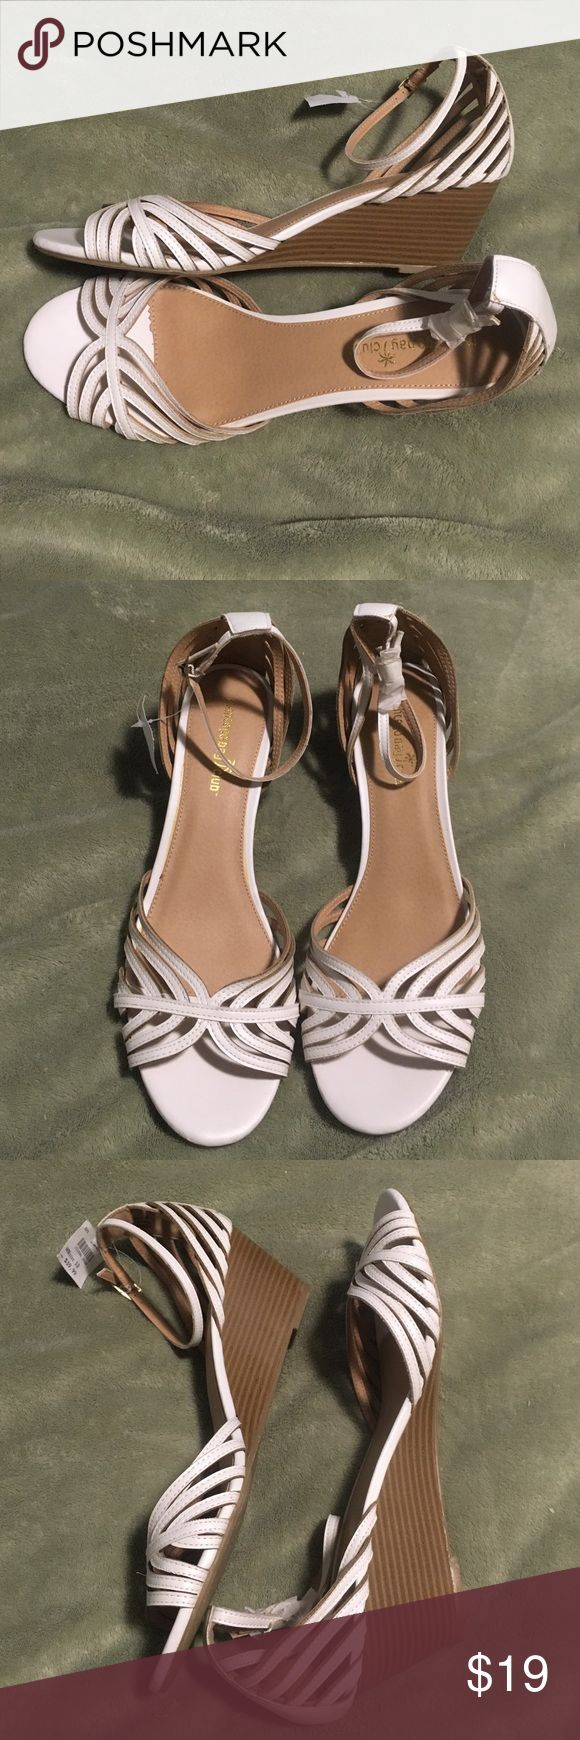 """NEW size 12 wedge shoes These shoes are brand-new with tag attached regular price $39.99. They are a size 12 and brand is Montego Bay club. Wedge is 2.5"""". Has ankle strap. montego Bay Club Shoes Wedges"""